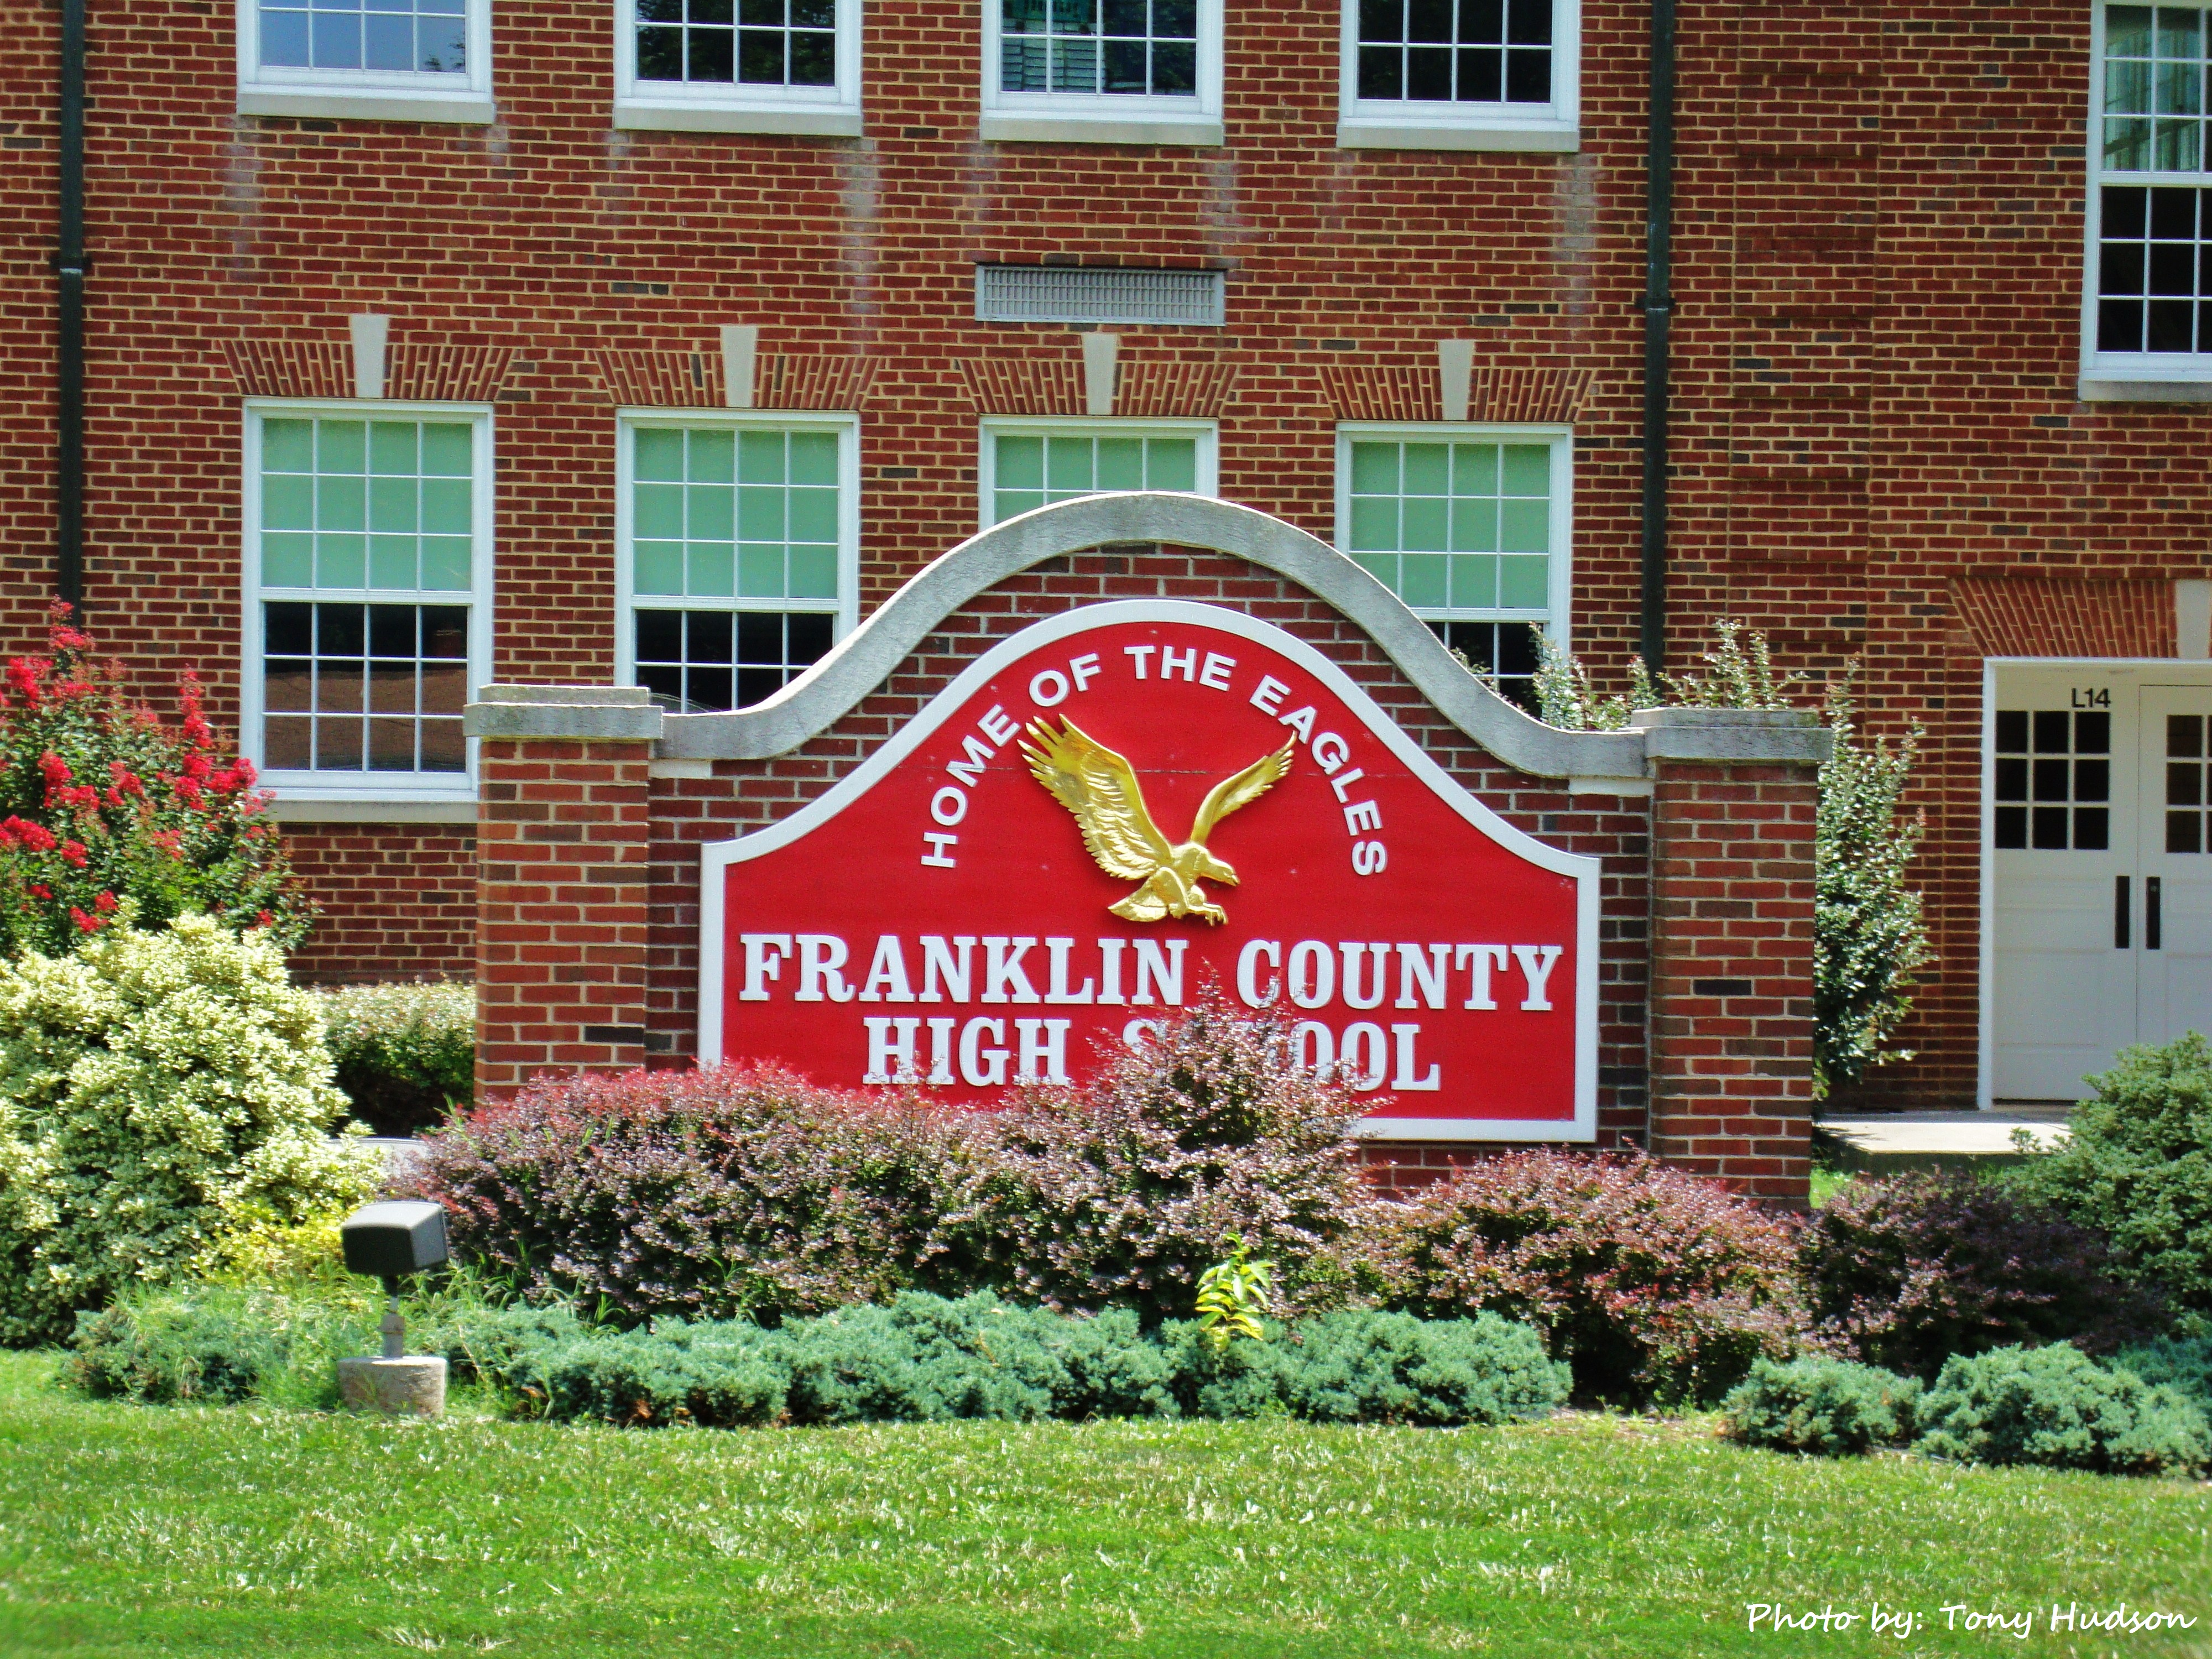 Franklin County High School Rocky Mount Virginia Wikipedia